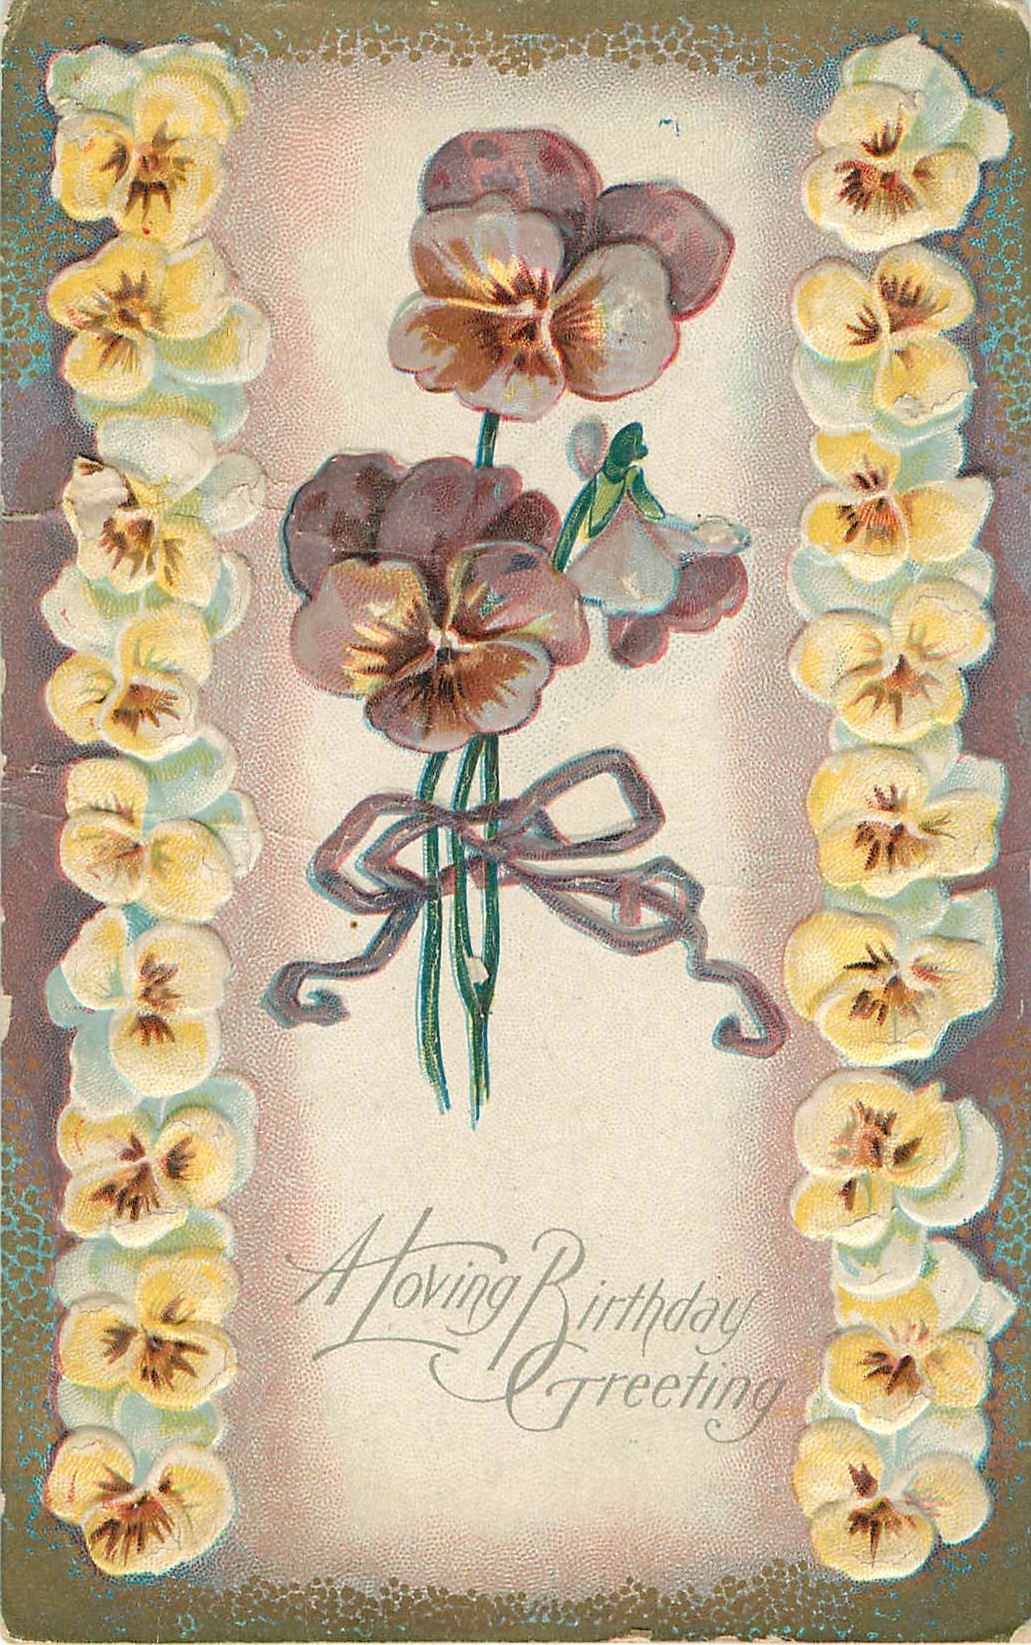 A Loving Birthday Greeting Pansy